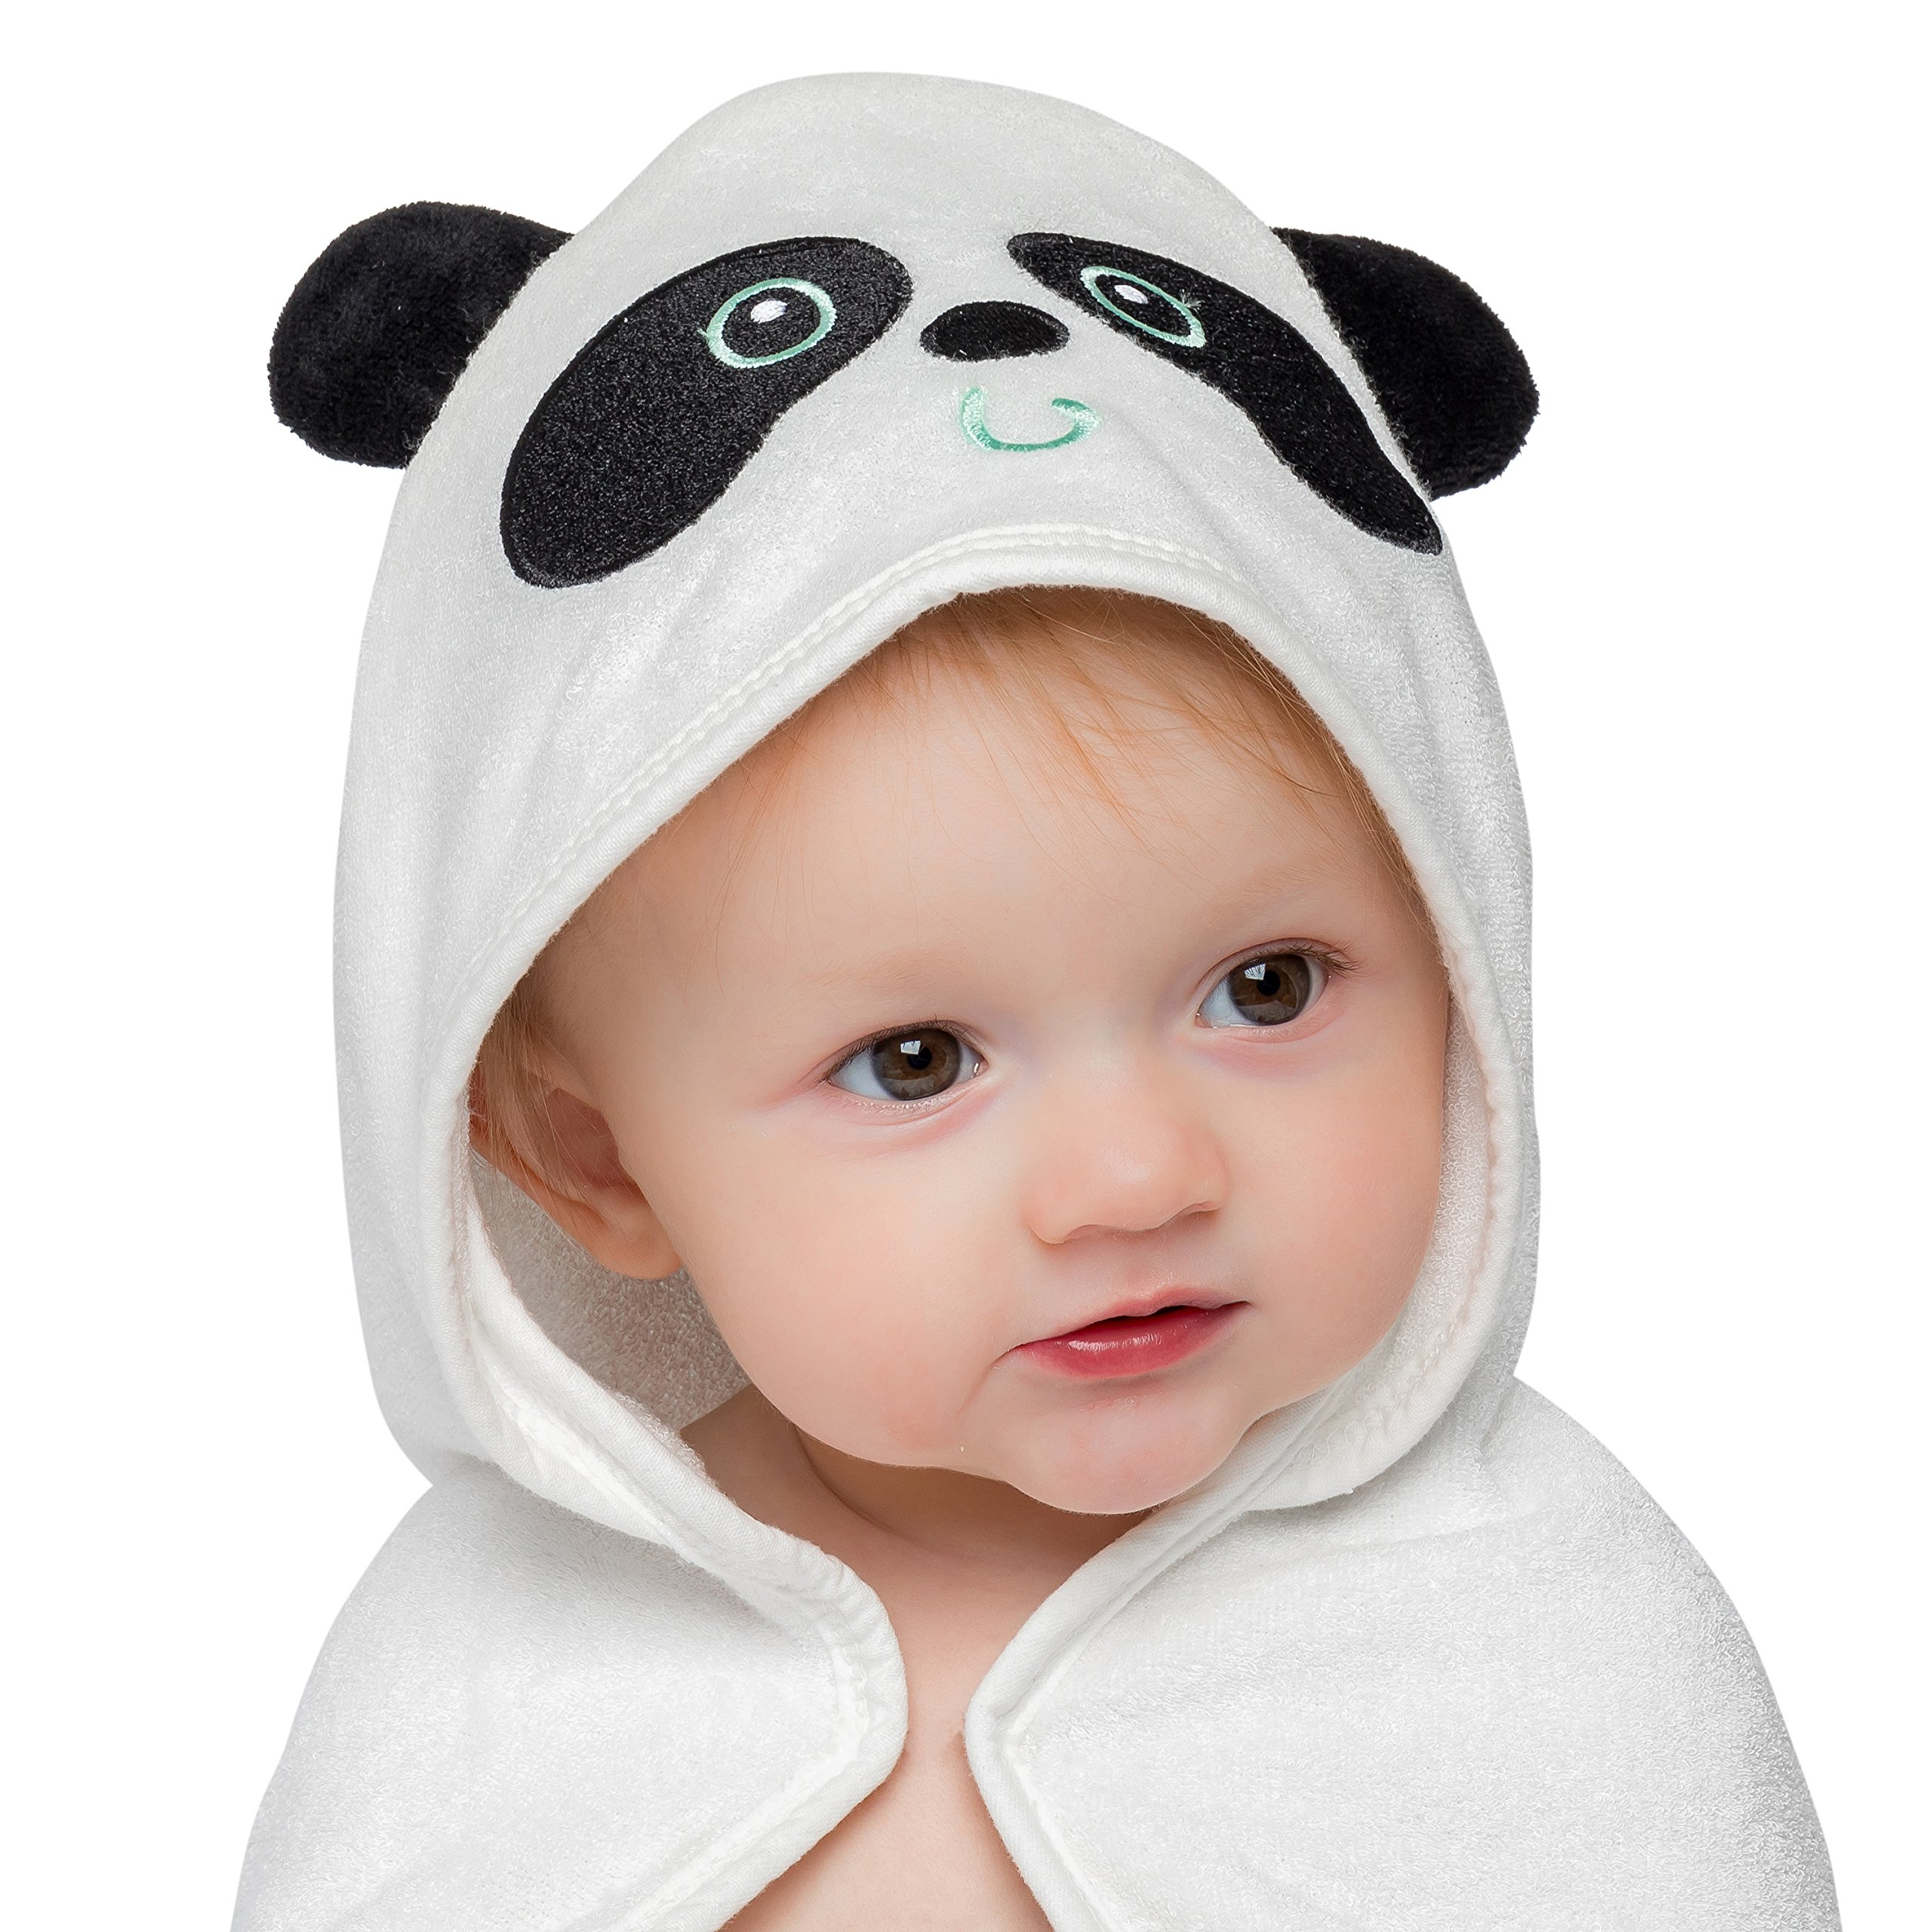 Basic Oasis Organic Bamboo Panda Baby Hooded Towel with Bonus Washcloth | Ultra Soft and Super Absorbent by Basic Oasis